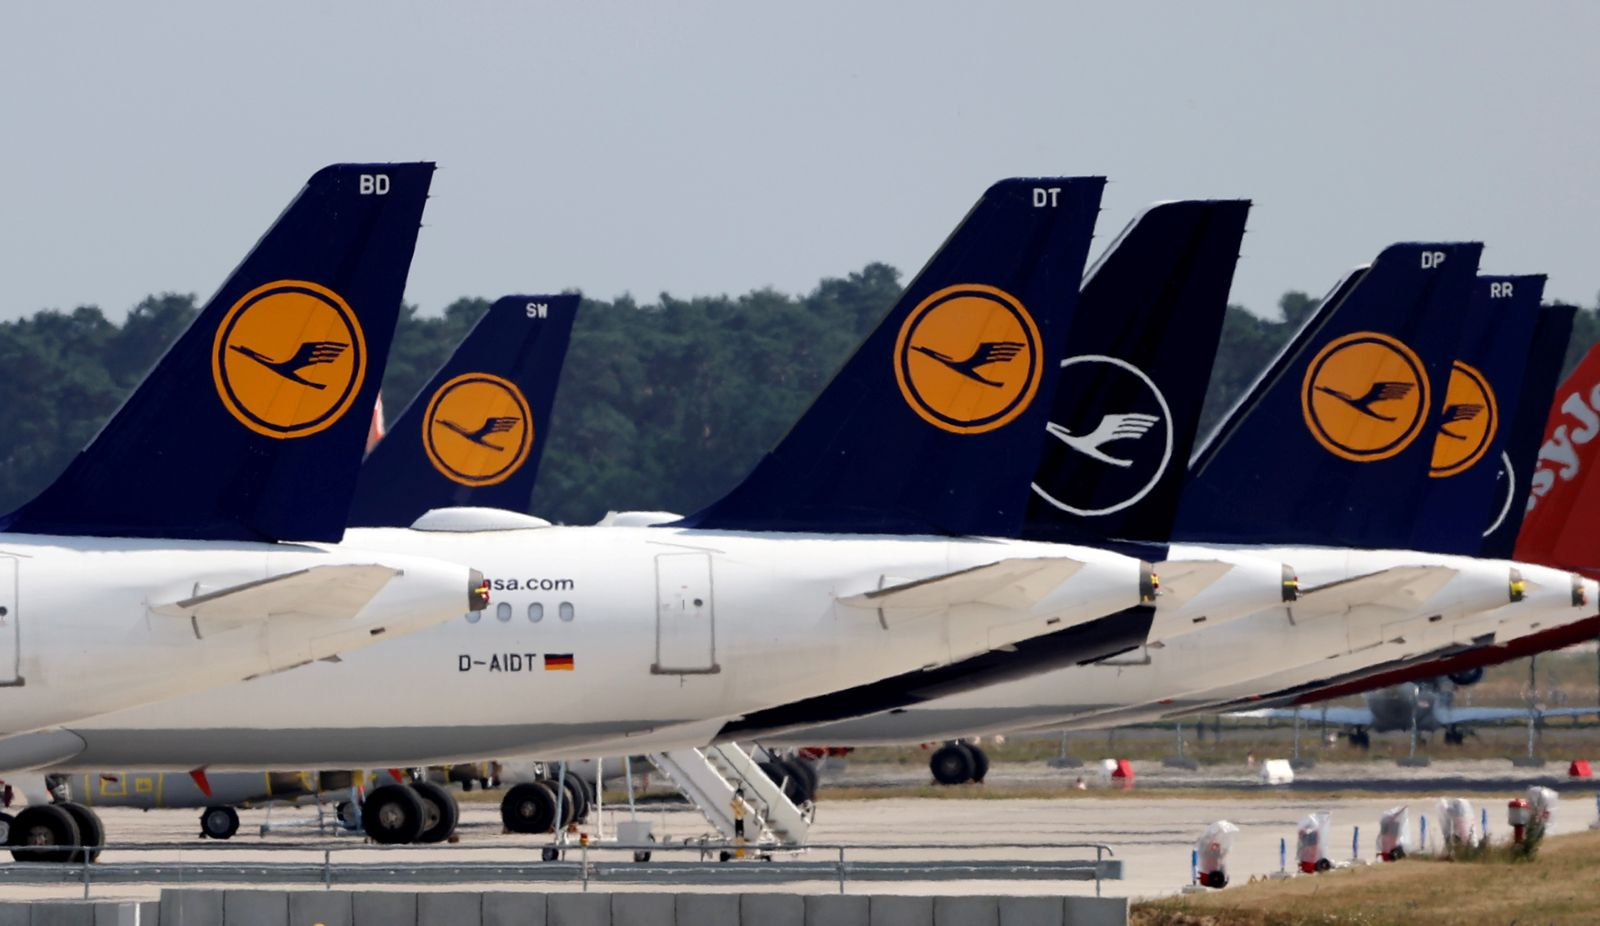 FILE PHOTO: Airplanes of German carrier Lufthansa are parked at the Berlin Schoenefeld airport in Schoenefeld